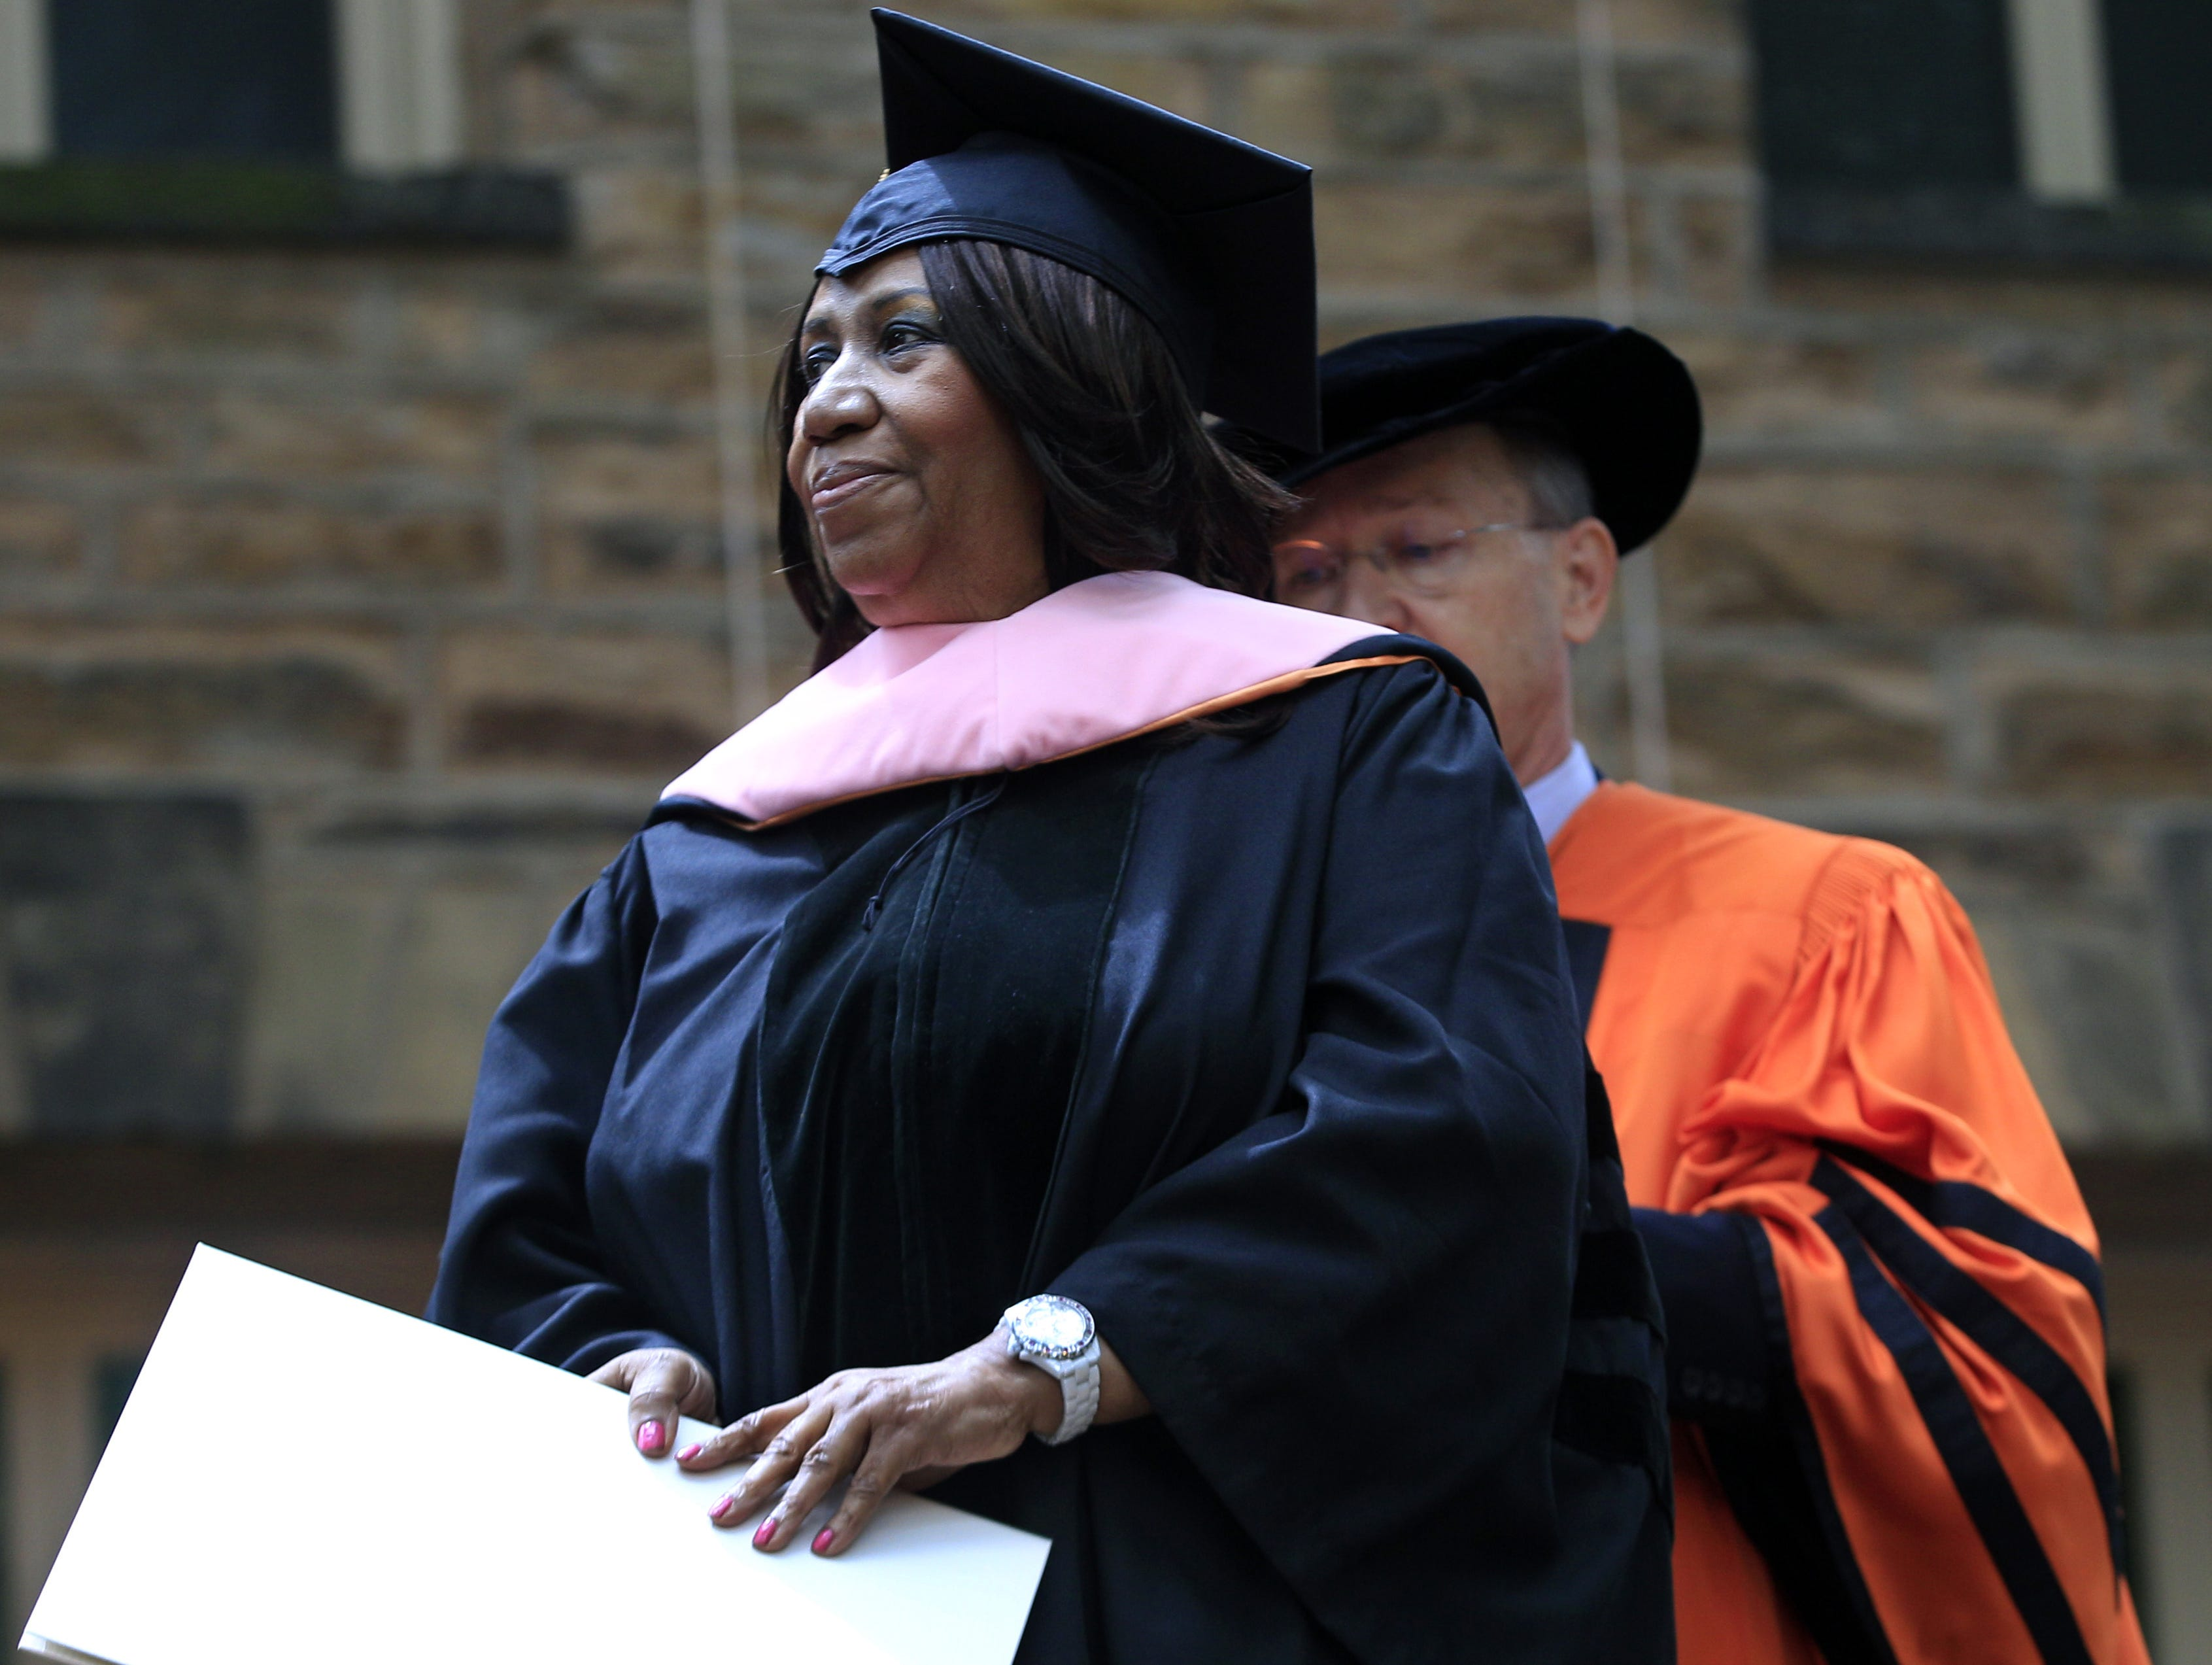 """Soul singer Aretha Franklin stands on stage at Princeton University in Princeton, N.J., Tuesday, June 5, 2012, as the """"Queen of Soul"""" receives an honorary Doctorate of Music degree during Princeton University's commencement."""